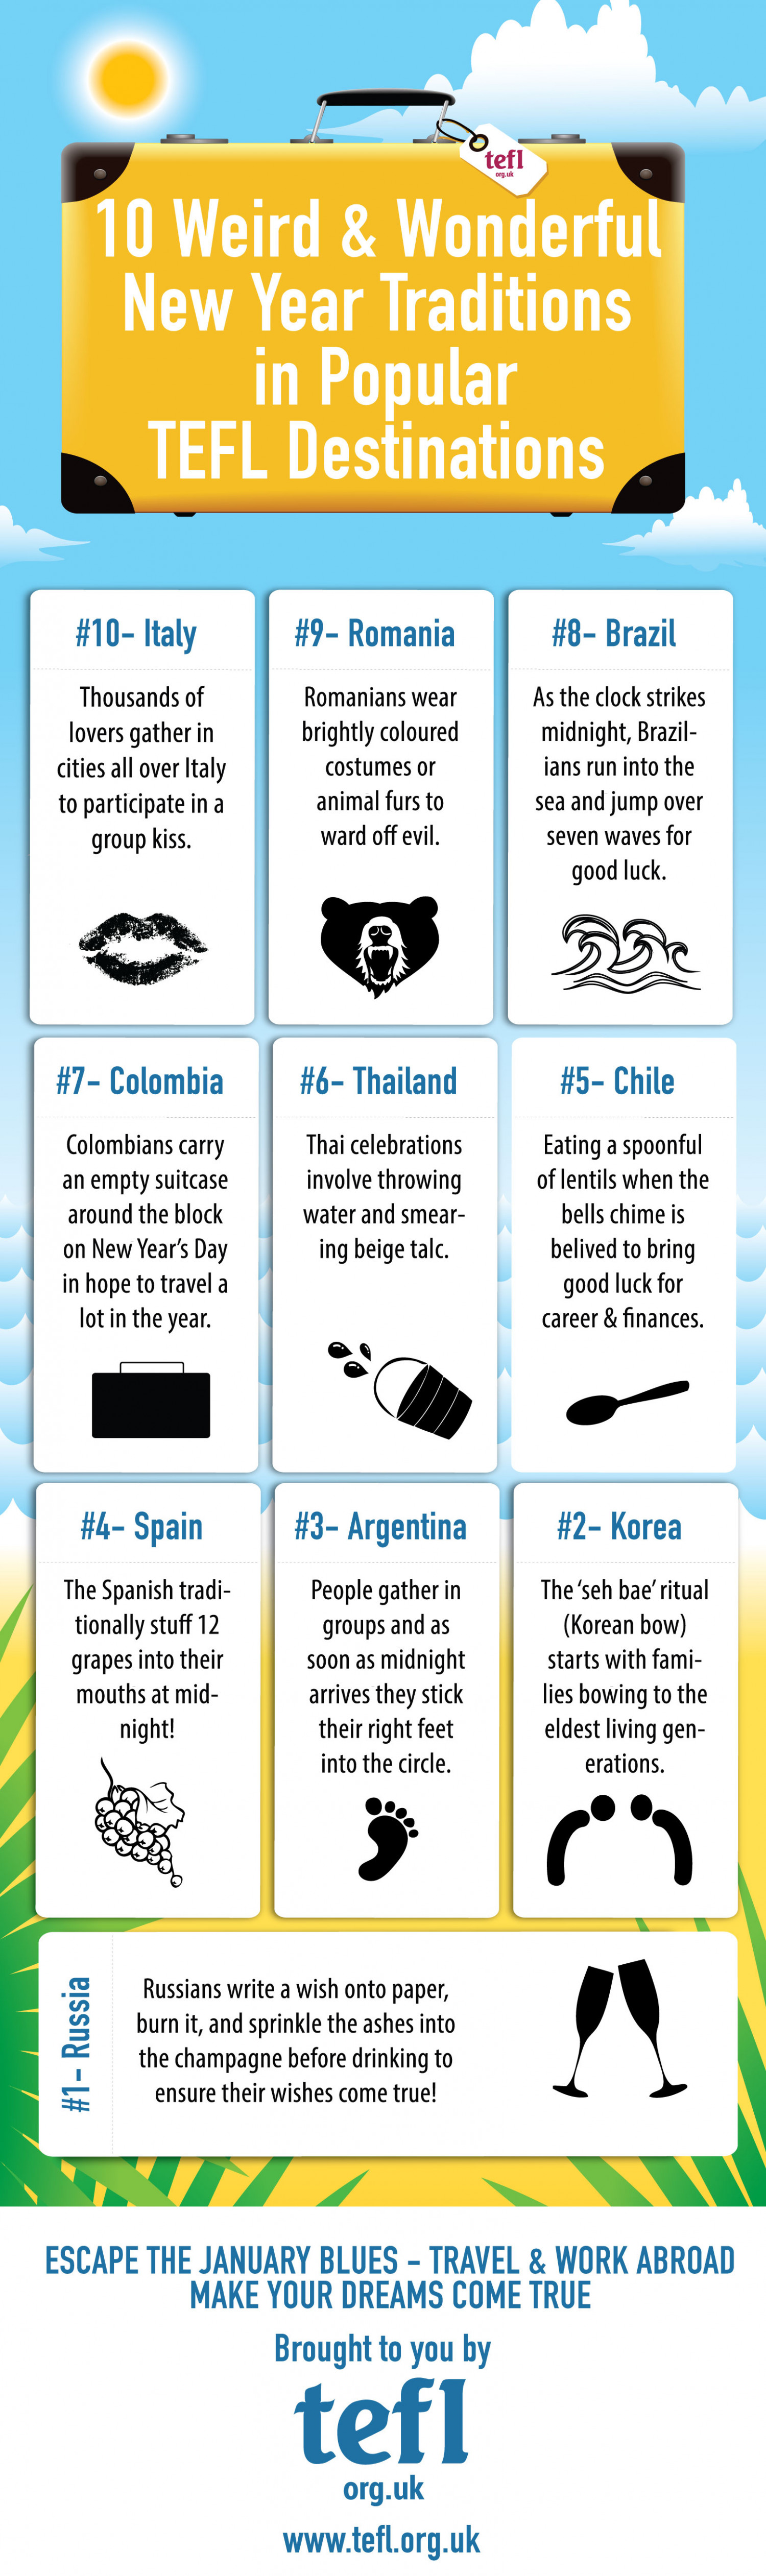 10 Surprising New Year Traditions in Popular TEFL Destinations Infographic